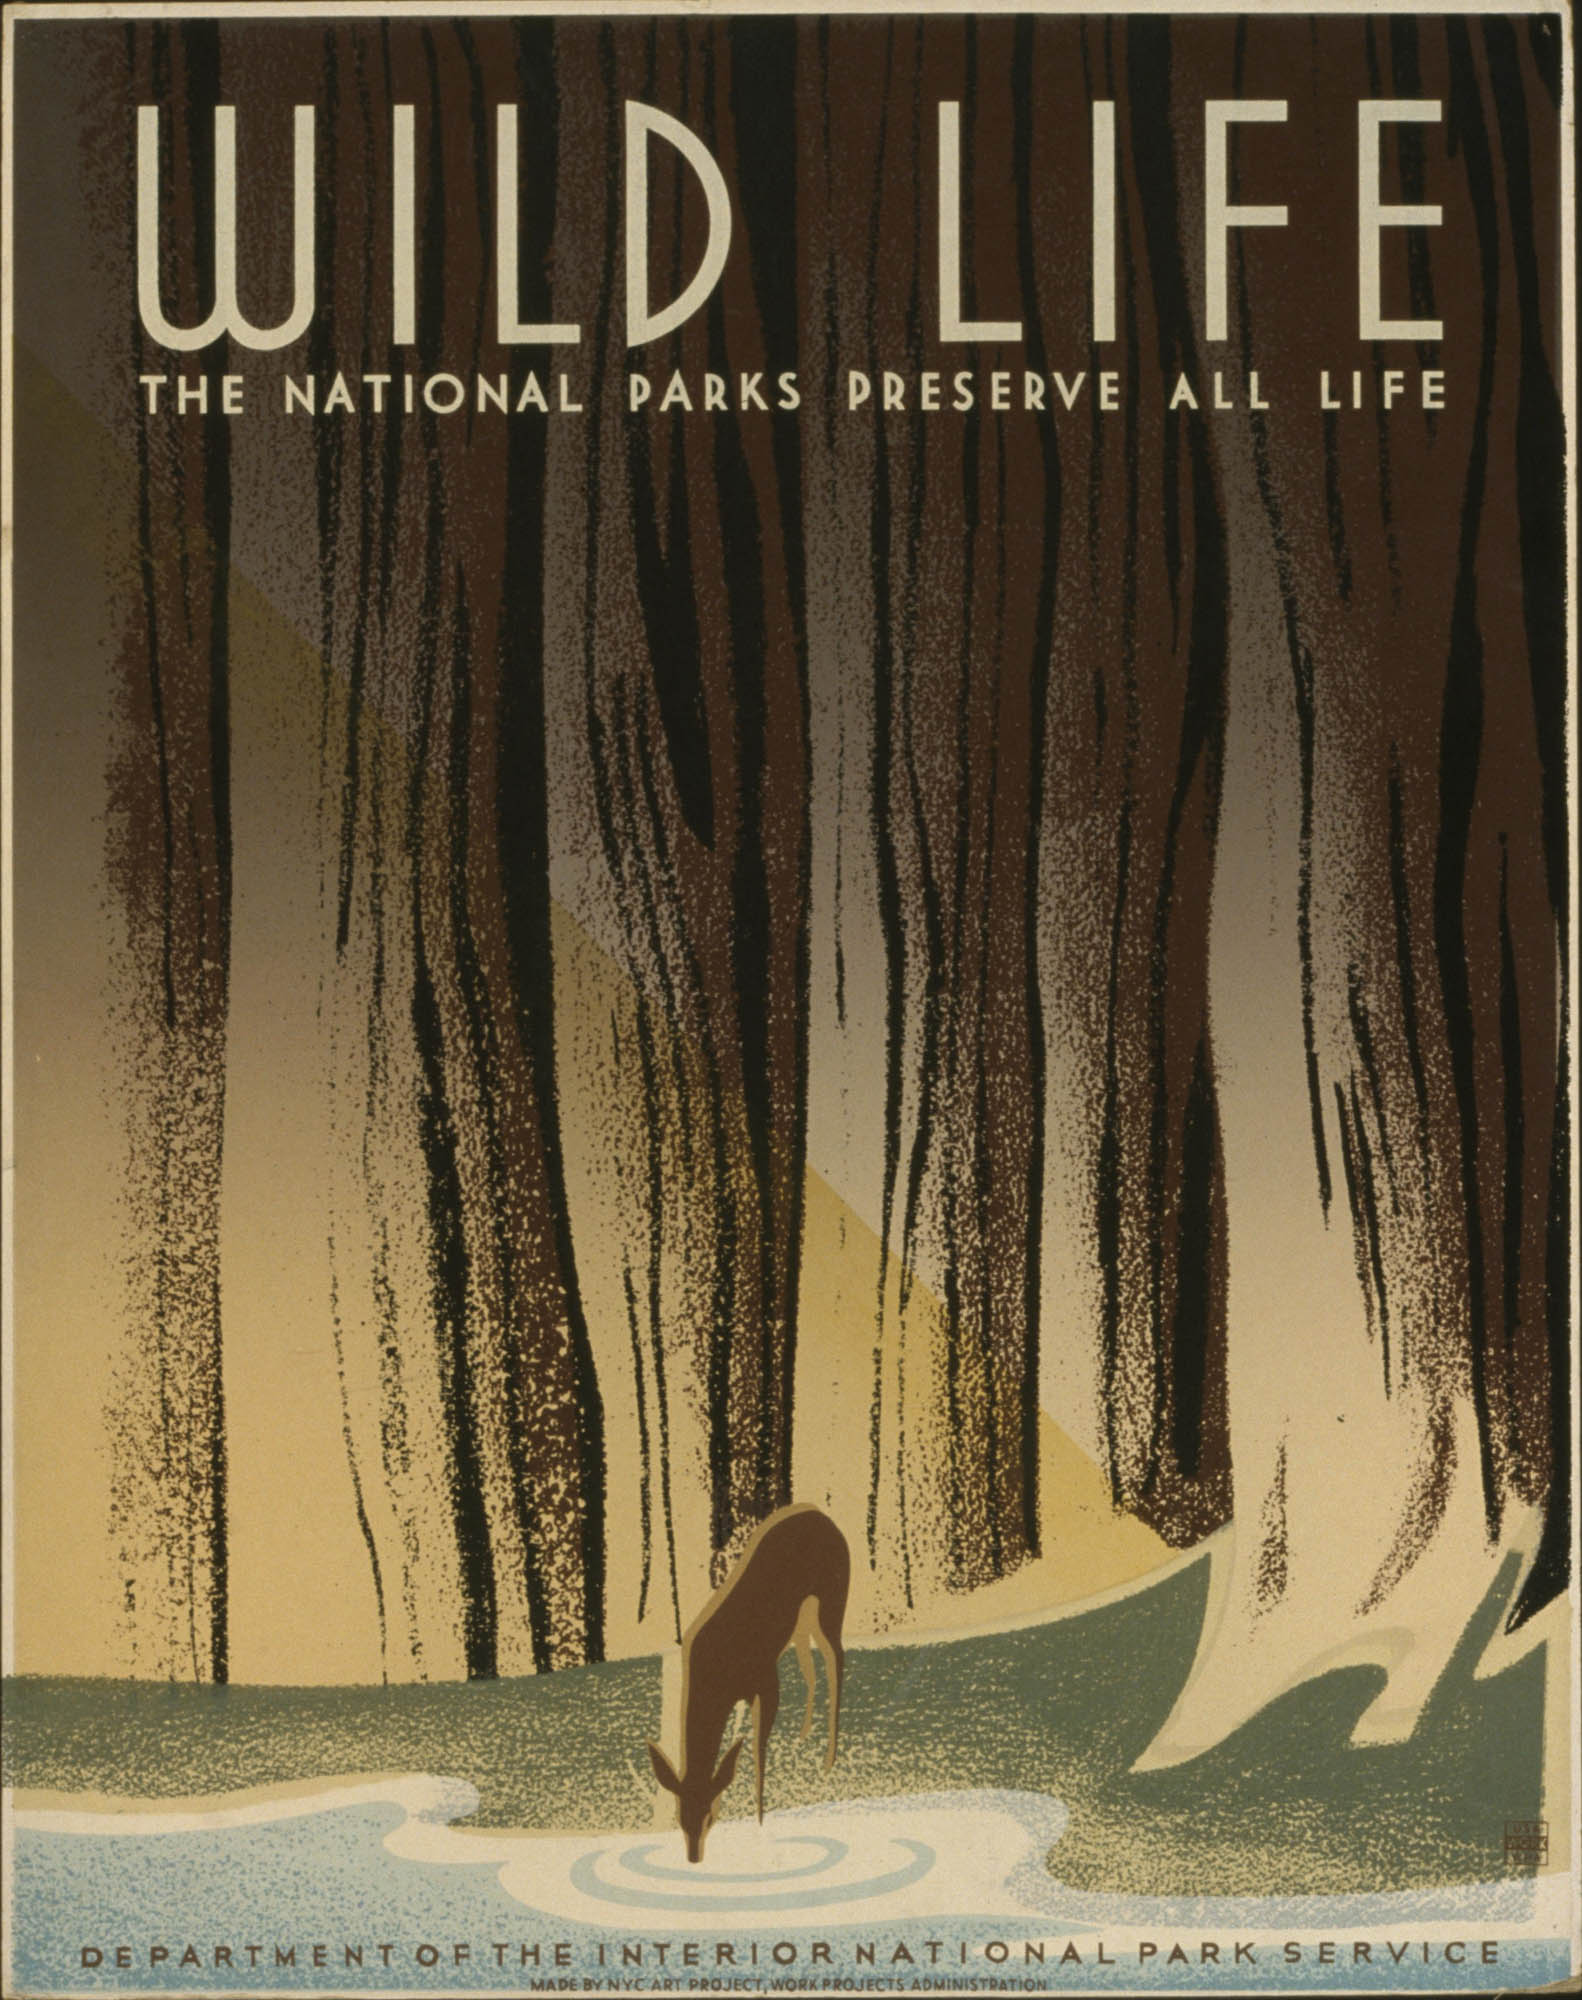 Wild Life From 1935 to 1936, as part of the New Deal under FDR, the Works Progress Administration, (or WPA) Federal Art Project created posters to publicize local exhibits, theater productions and health and educational programs. Among the most well-known and revered of this collection are the posters advertising the National Parks, considered the most ecologically and geographically distinct and beautiful places within the United States. The White-Tailed Deer are among the most common wild animal within the United States, and have relatives spanning the whole of the Western Hemisphere. Regardless of the commonality of the species, the WPA makes a note here to protect and be mindful of all wildlife within the United States, whether it be endangered or otherwise. (Library of Congress)